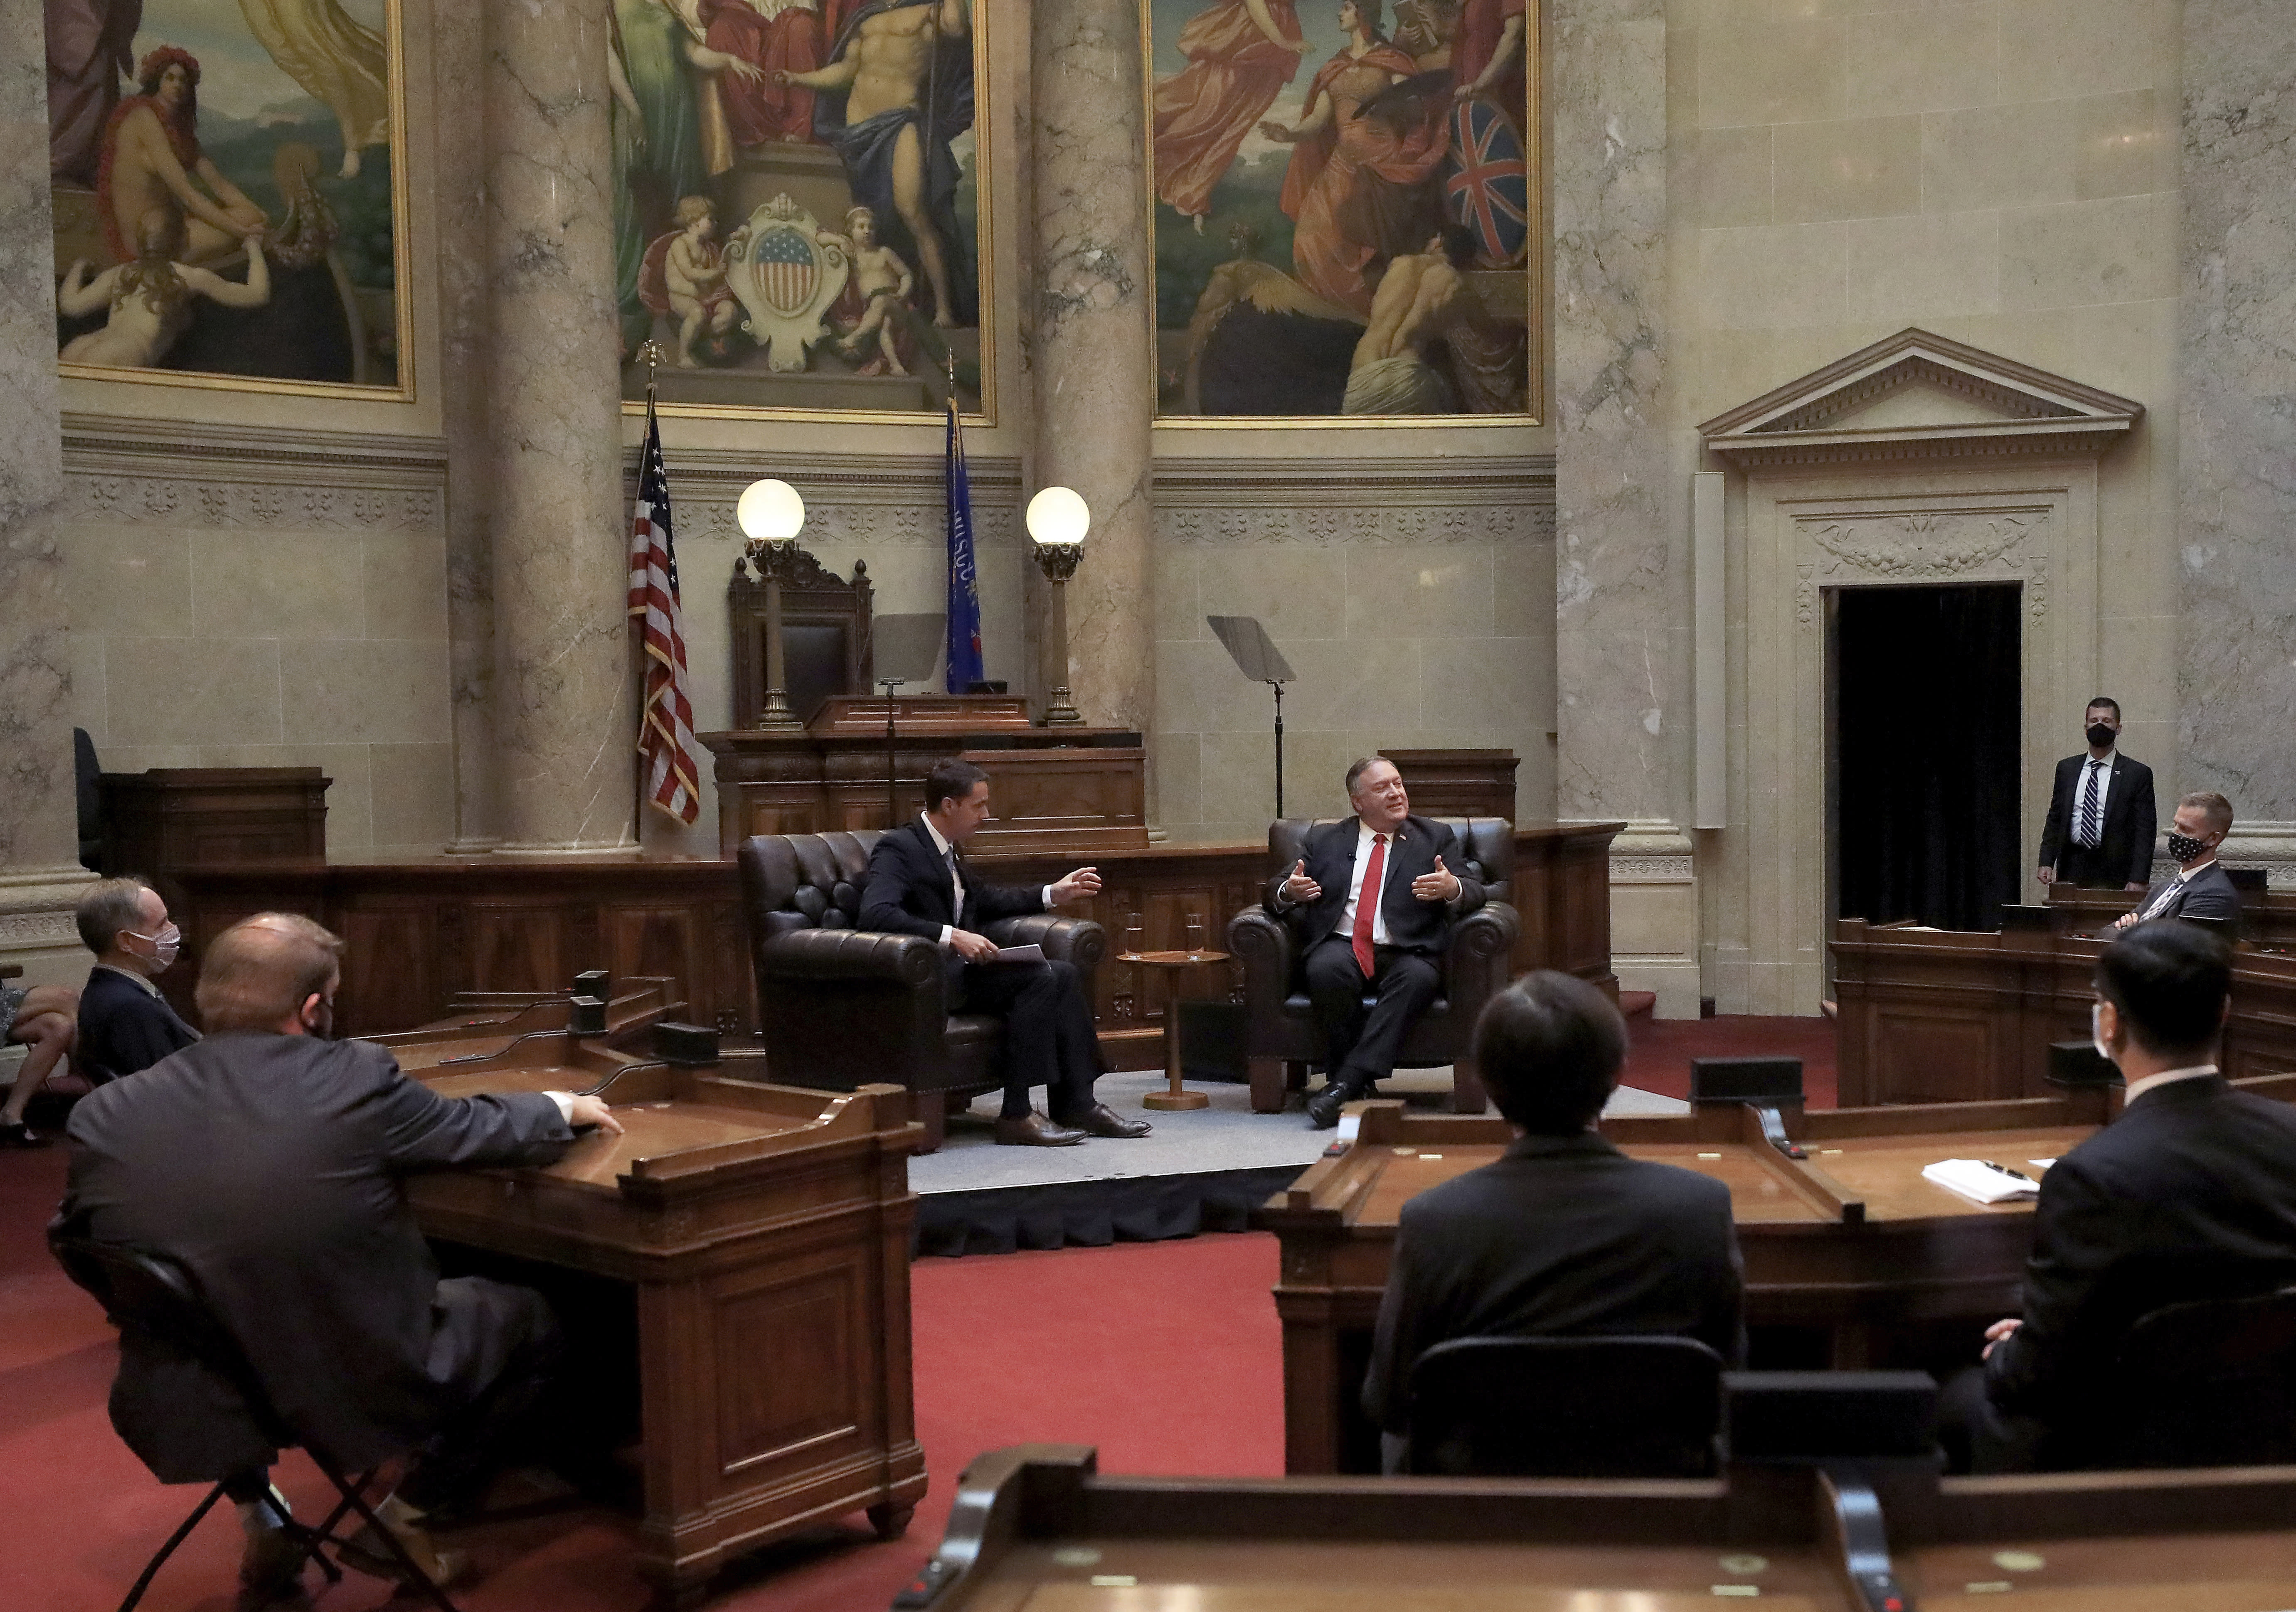 Secretary of State Mike Pompeo , right, responds to a question from Wisconsin Senate President Roger Roth, R-Appleton, during a question and answer sessions with state Republican legislators in the Senate chamber of the Wisconsin State Capitol in Madison, Wis. Wednesday, Sept. 23, 2020. (John Hart/Wisconsin State Journal via AP)